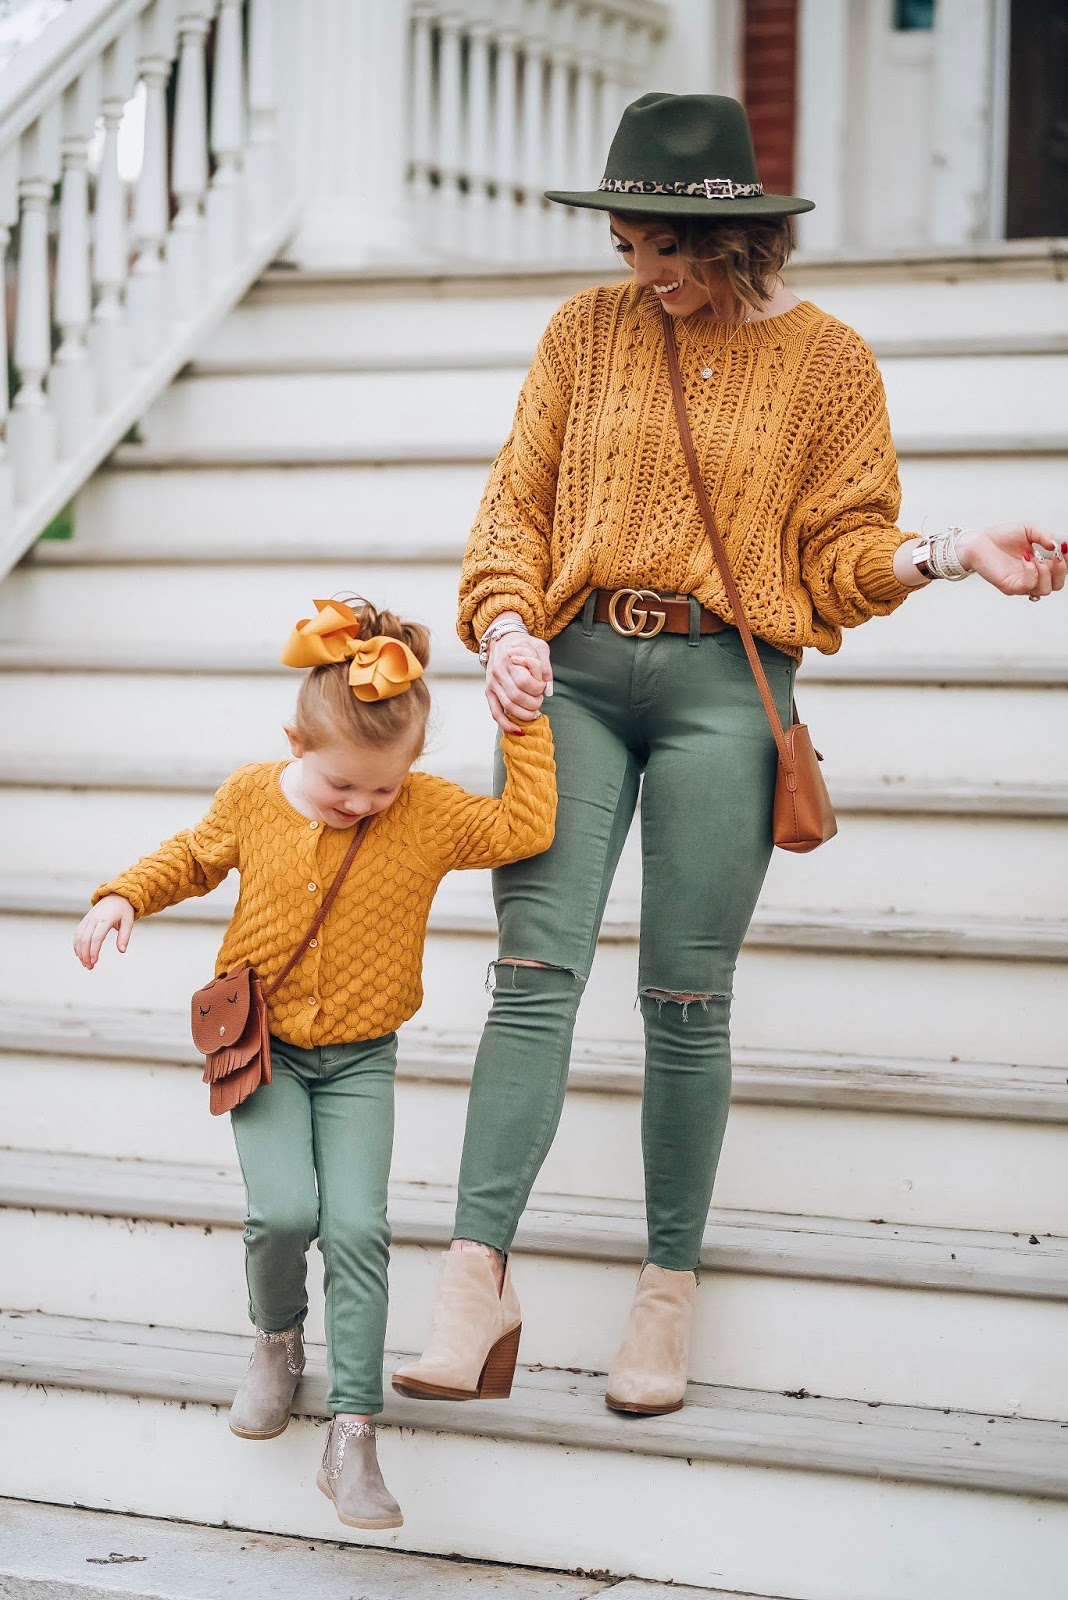 Mustard Yellow Paired With Olive Green For Fall - Affordable Style - Something Delightful Blog #fallstyle